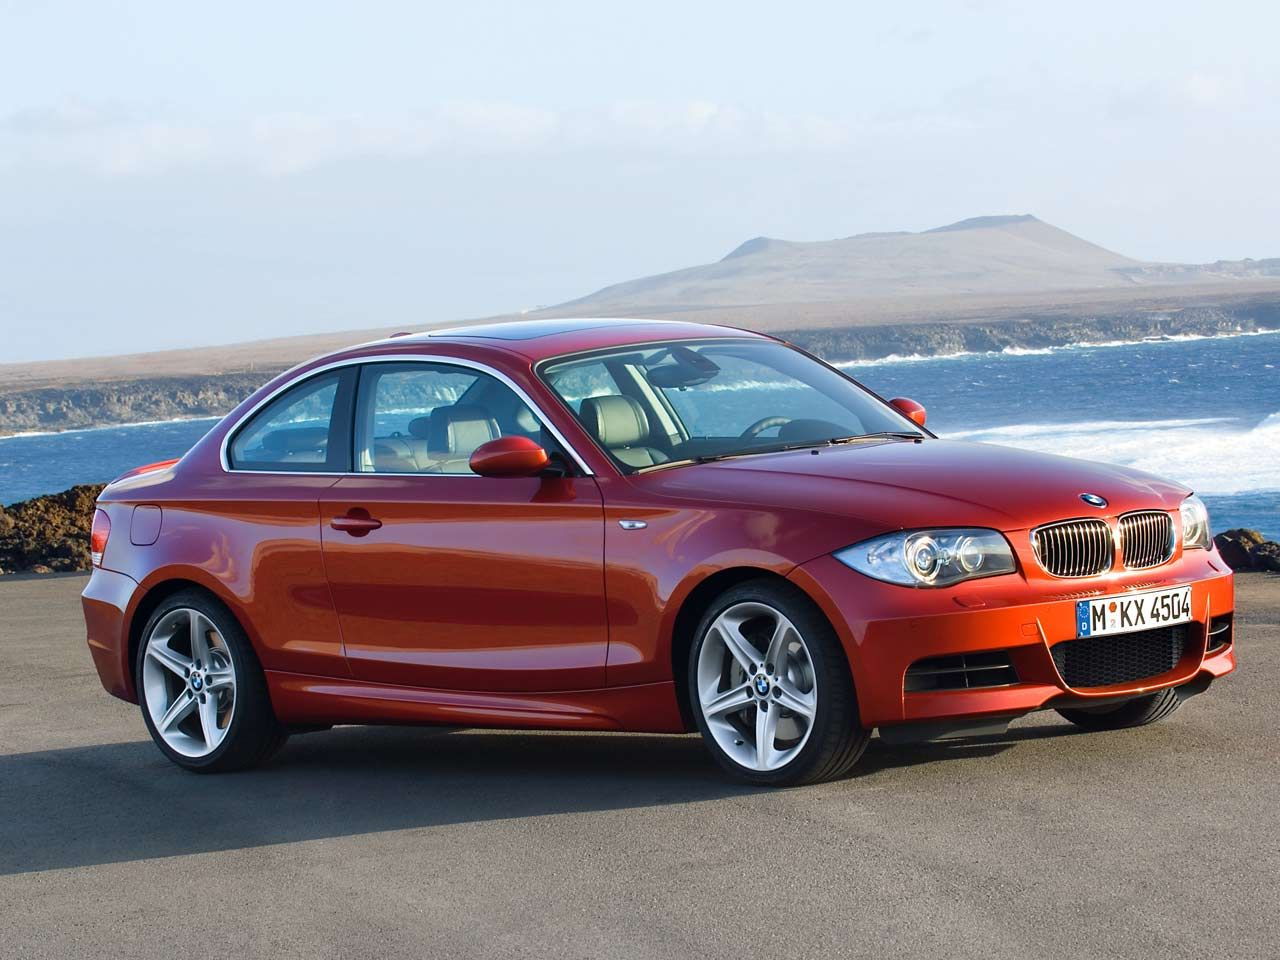 bmw 135i Wallpapers Cars Wallpapers And Pictures car imagescar pics 1280x960